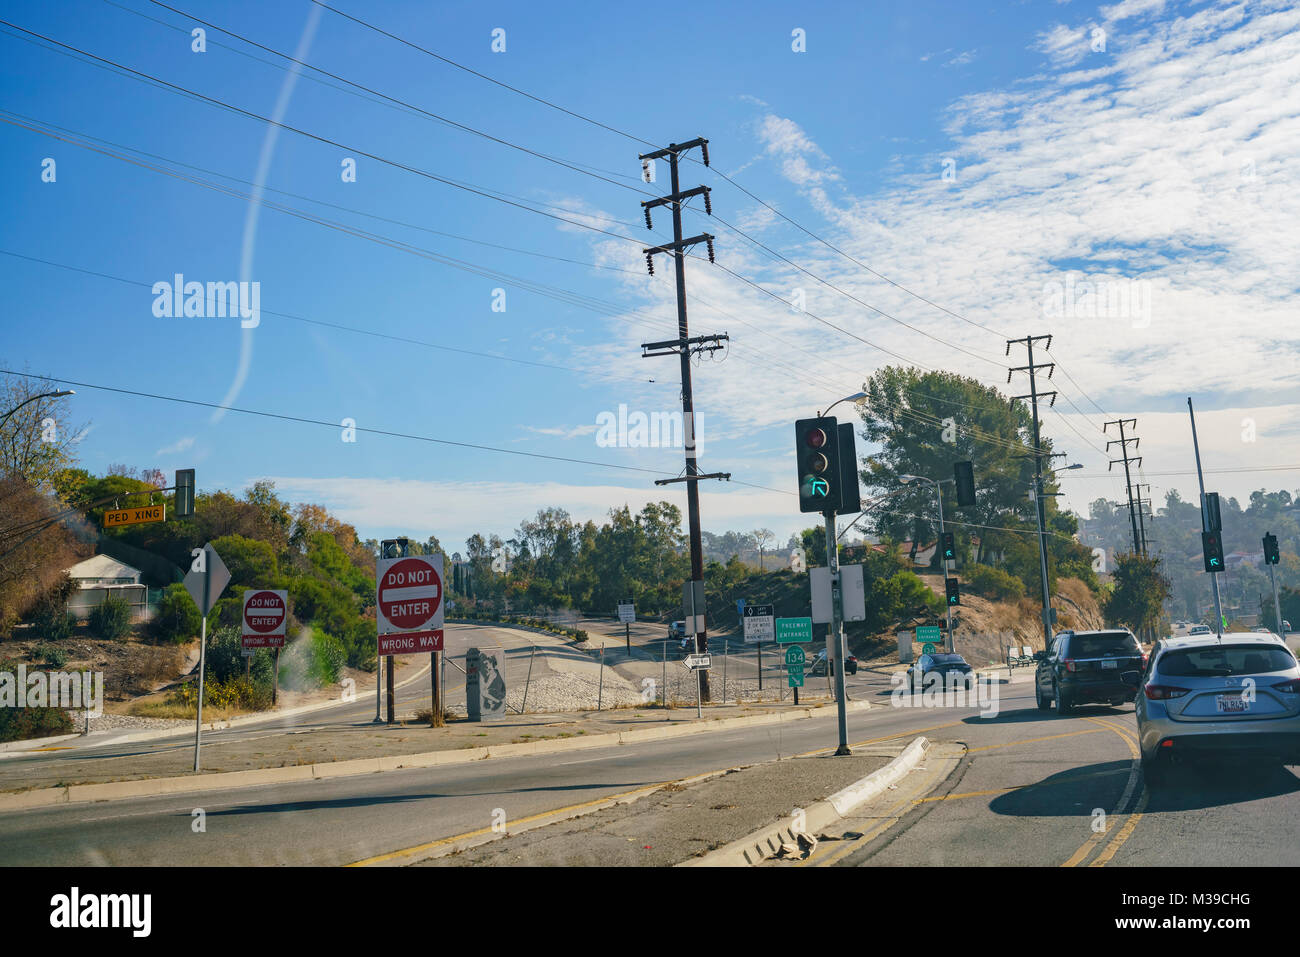 Los Angeles, DEC 31: Big sign of Do Not Enter Wrong Way on DEC 31, 2017 at Los Angeles, California - Stock Image